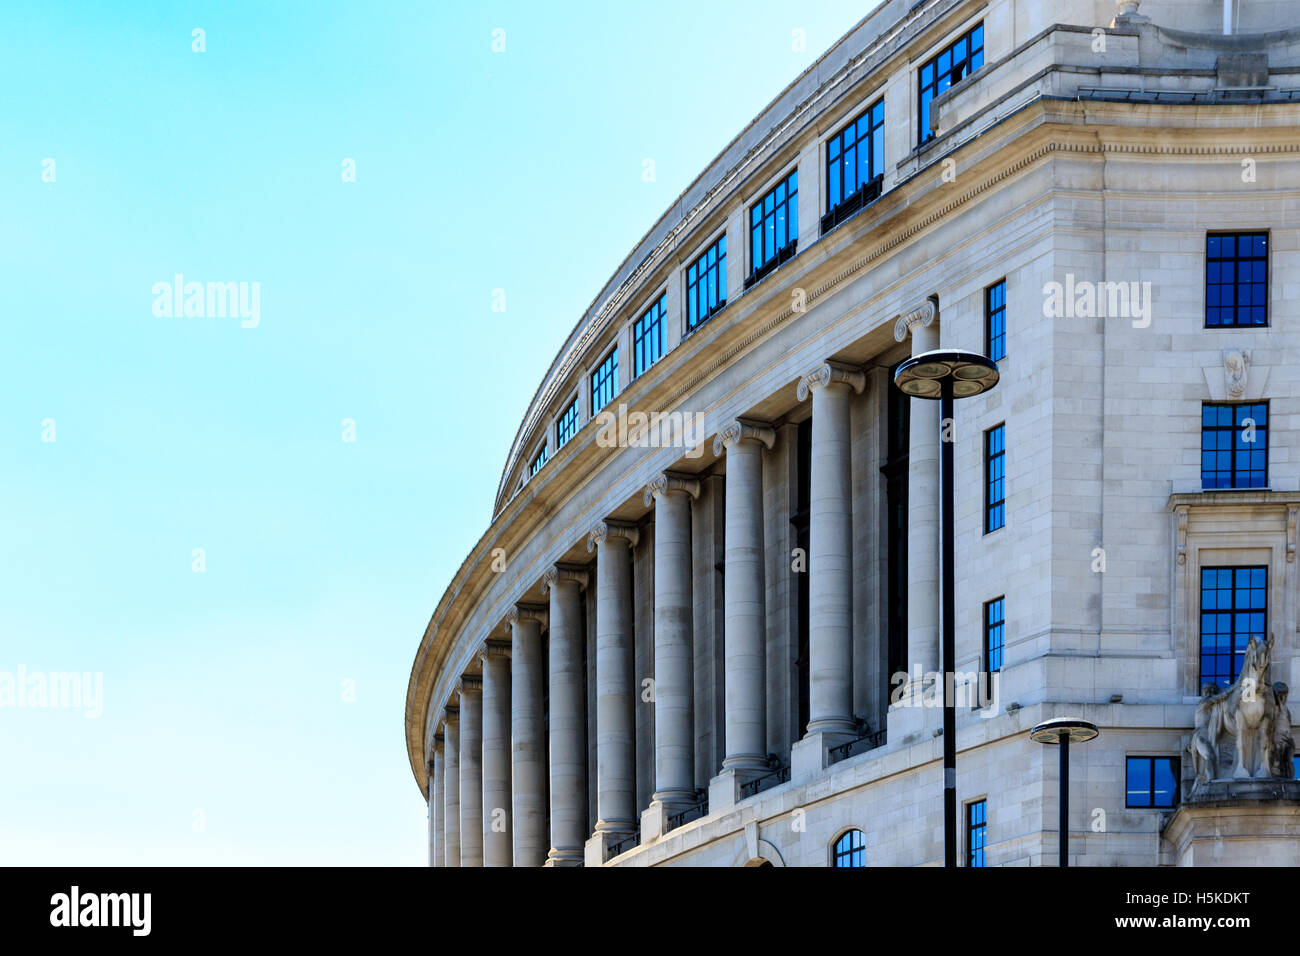 Unilever House, a office building in the Neoclassical Art Deco style with a curving frontage against a blue sky - Stock Image